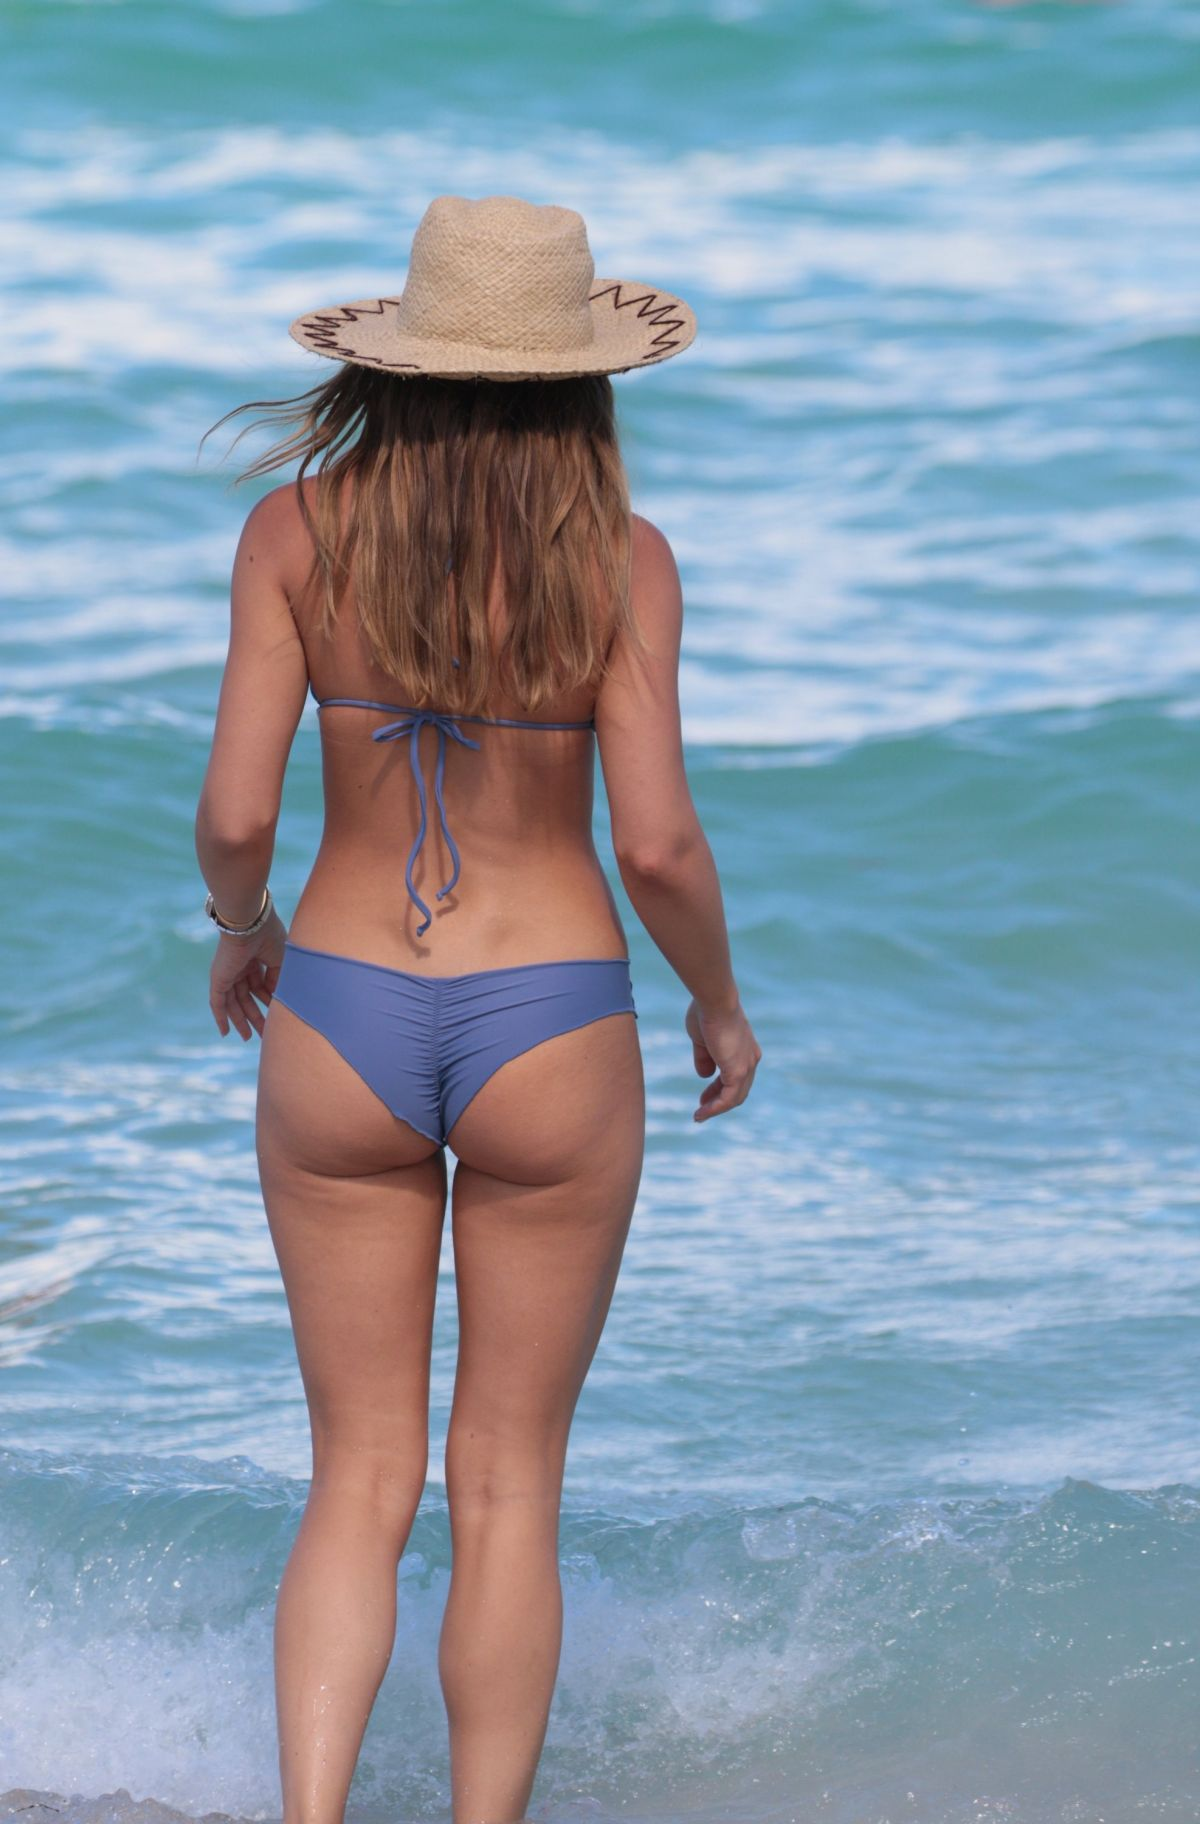 Keleigh Sperry in Bikini on the beach in Mexico Pic 12 of 35